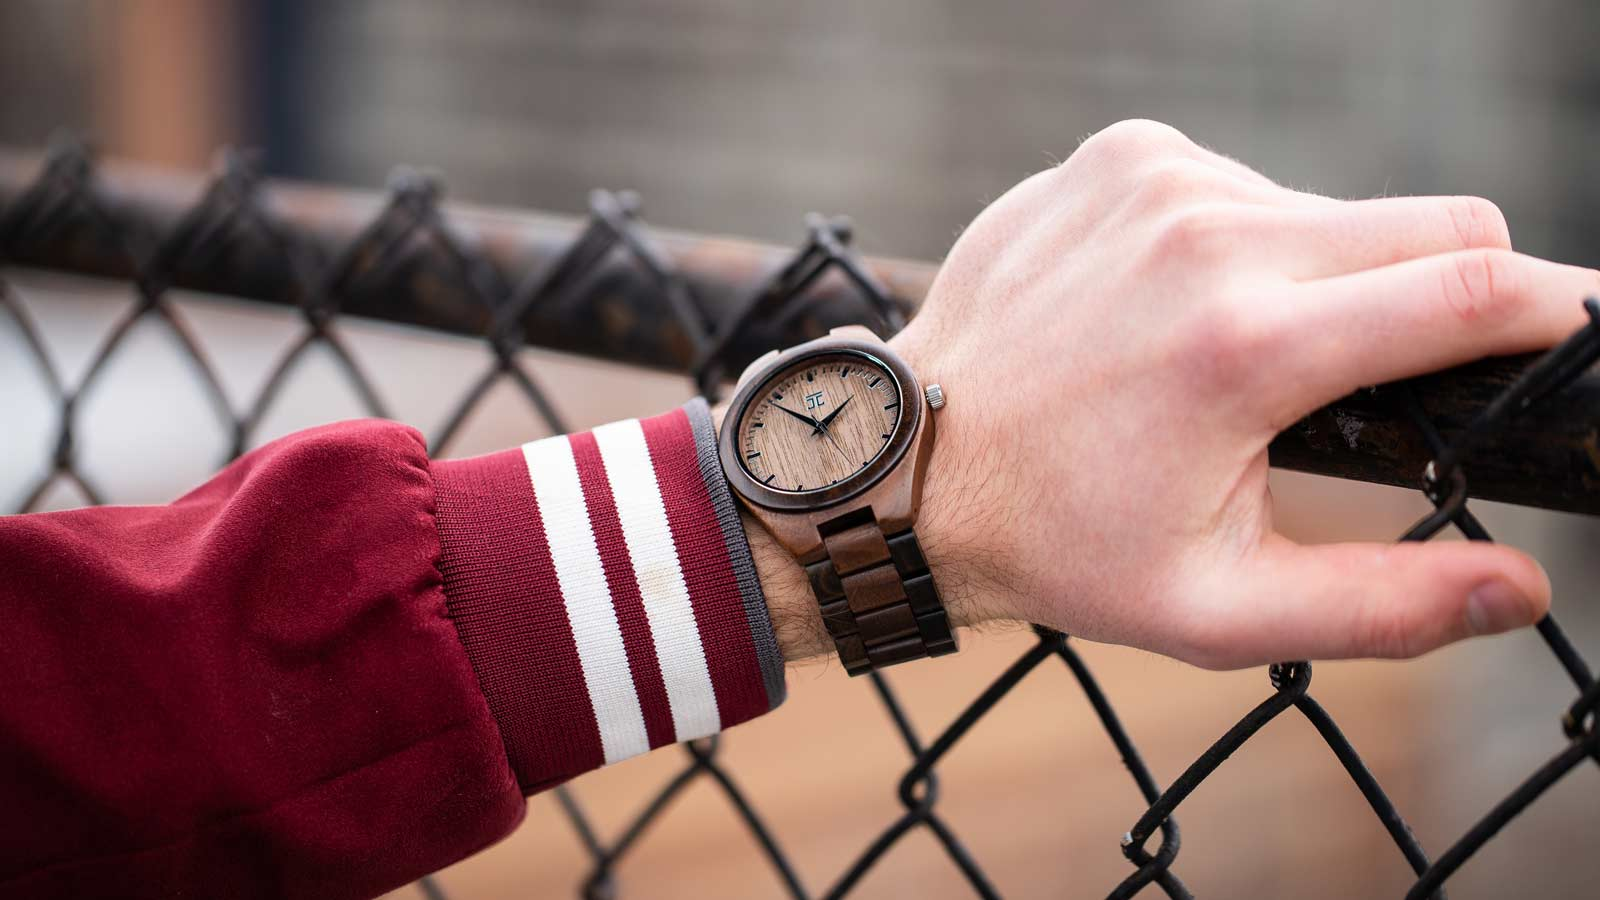 Wooden Watches by Joycoast, Hand Crafted from Walnut